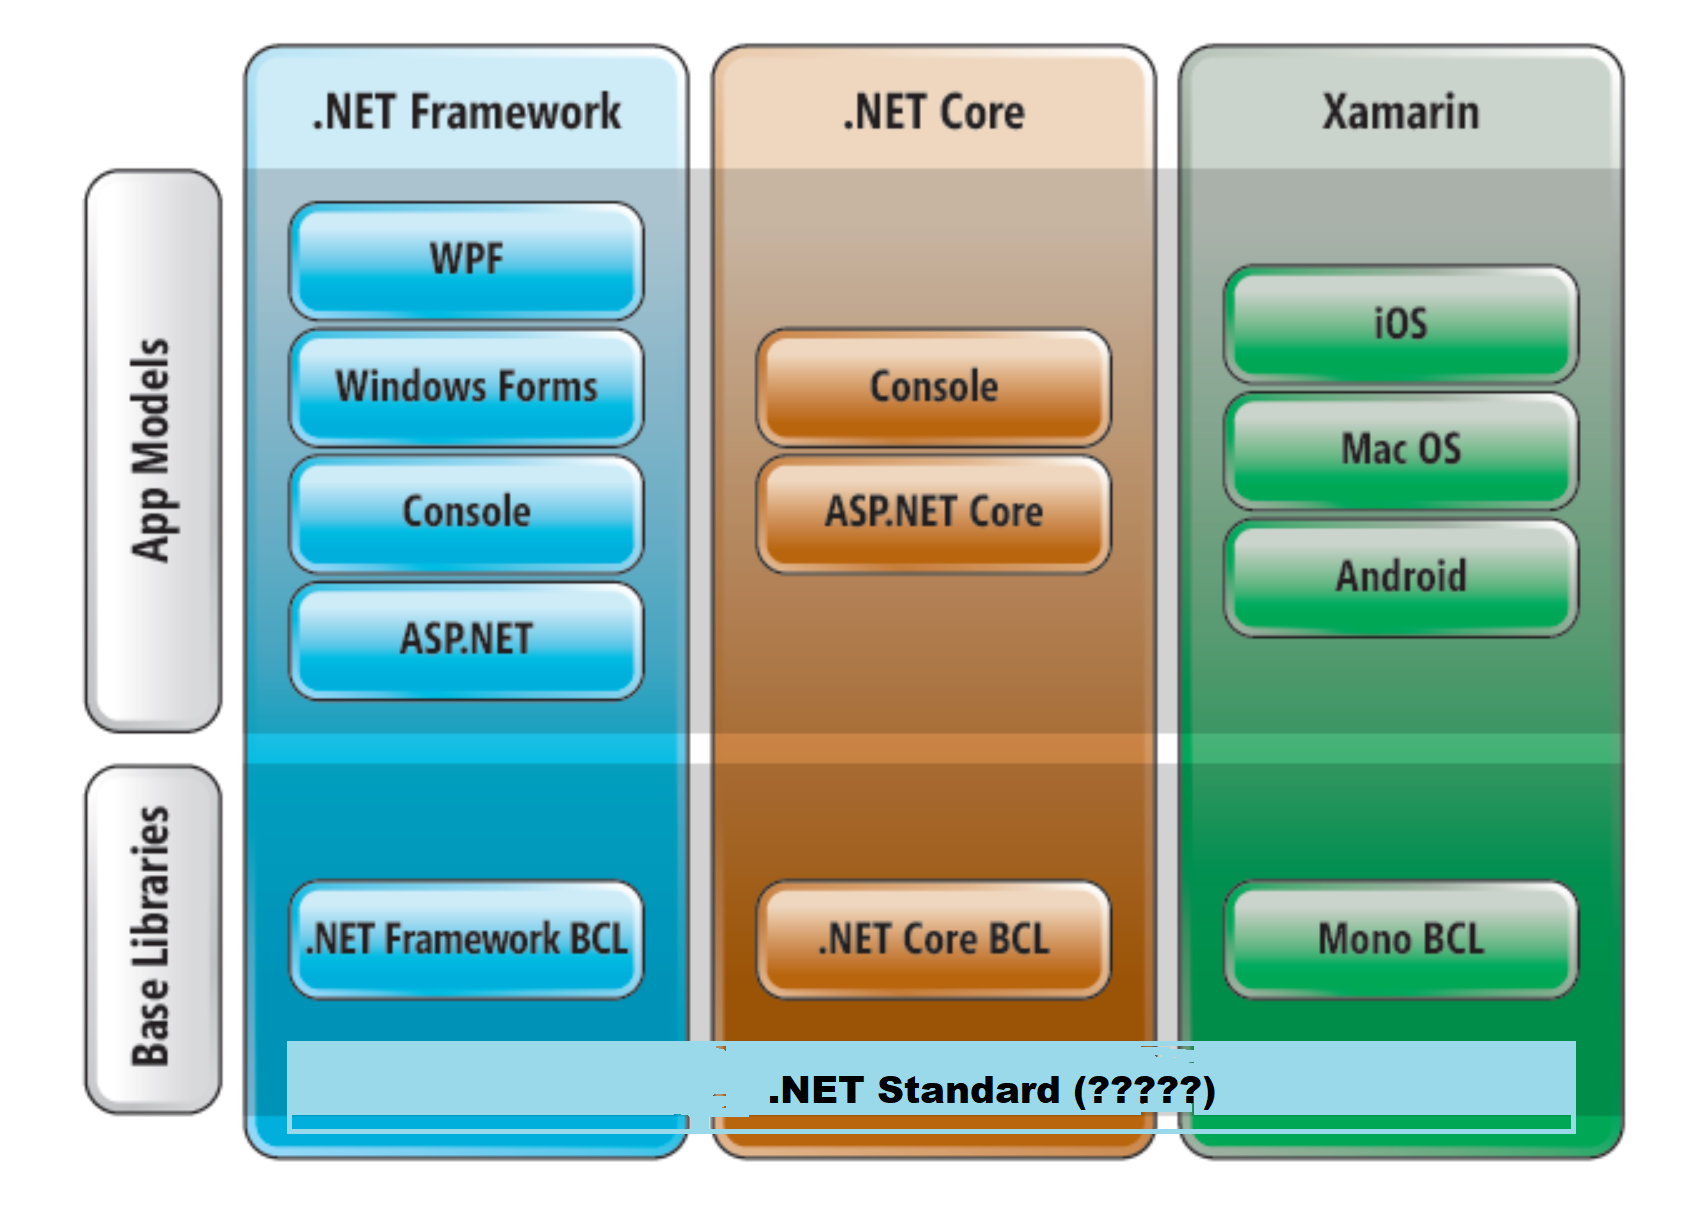 Is this the correct visualization of .NET Standard?